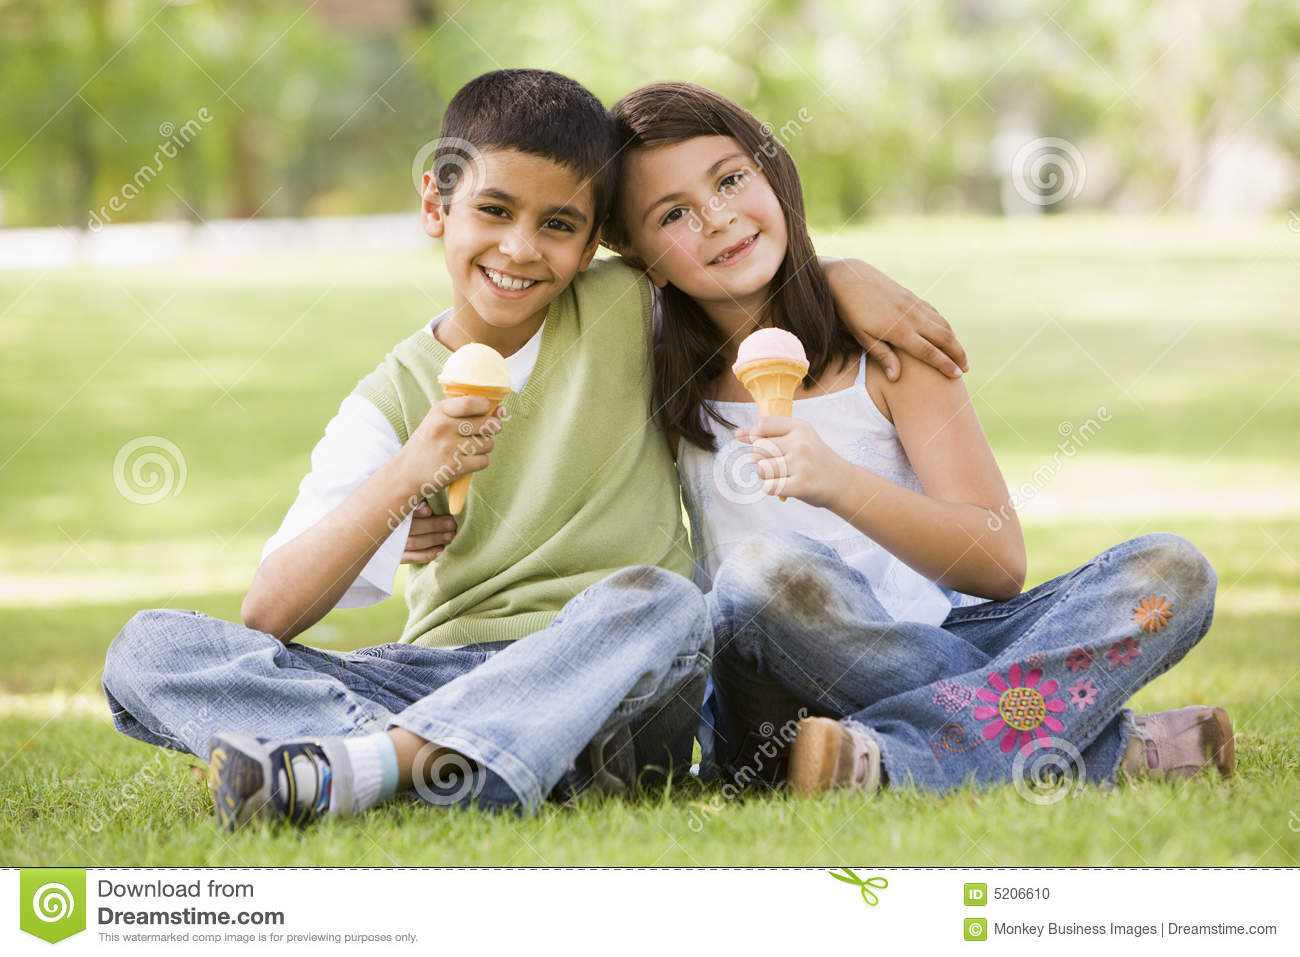 Two children eating ice cream in park